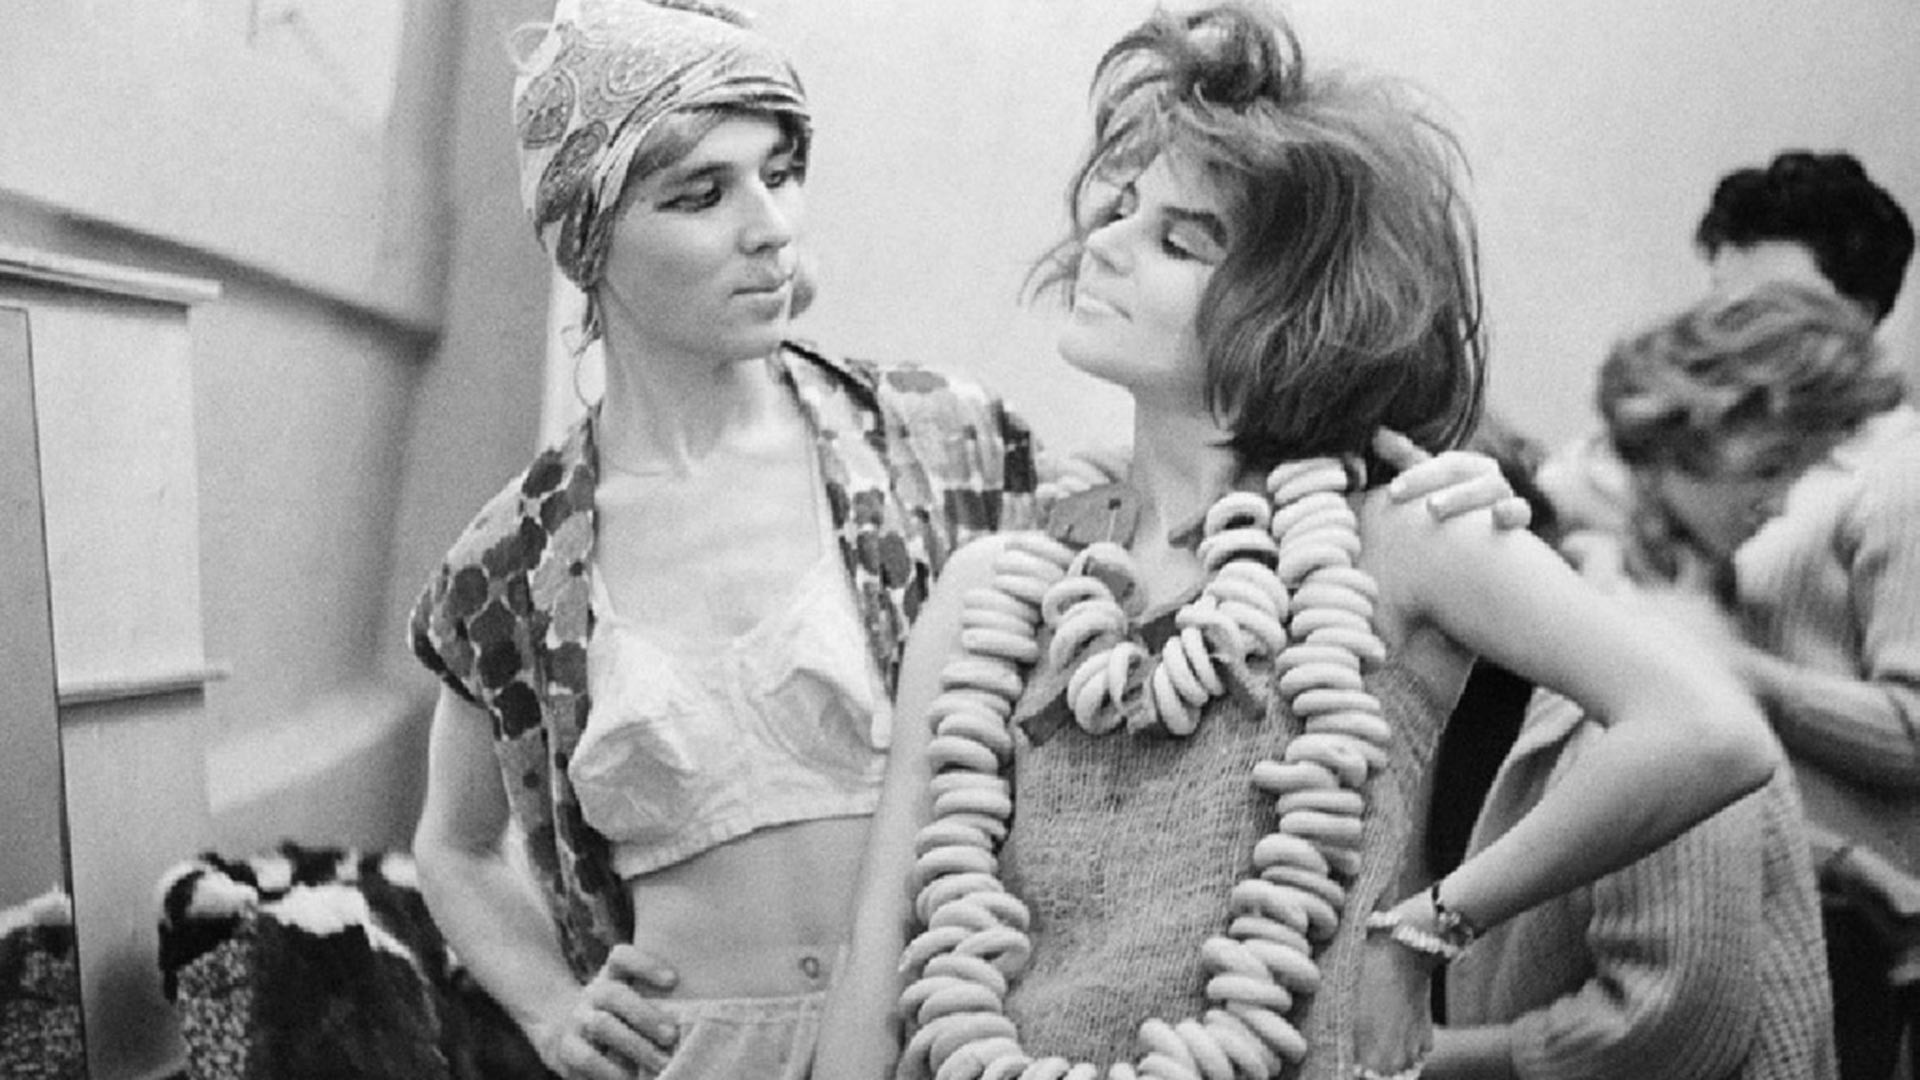 Behind the scenes of a fashion show put on by designer Vyacheslav Zaitsev, 1966.